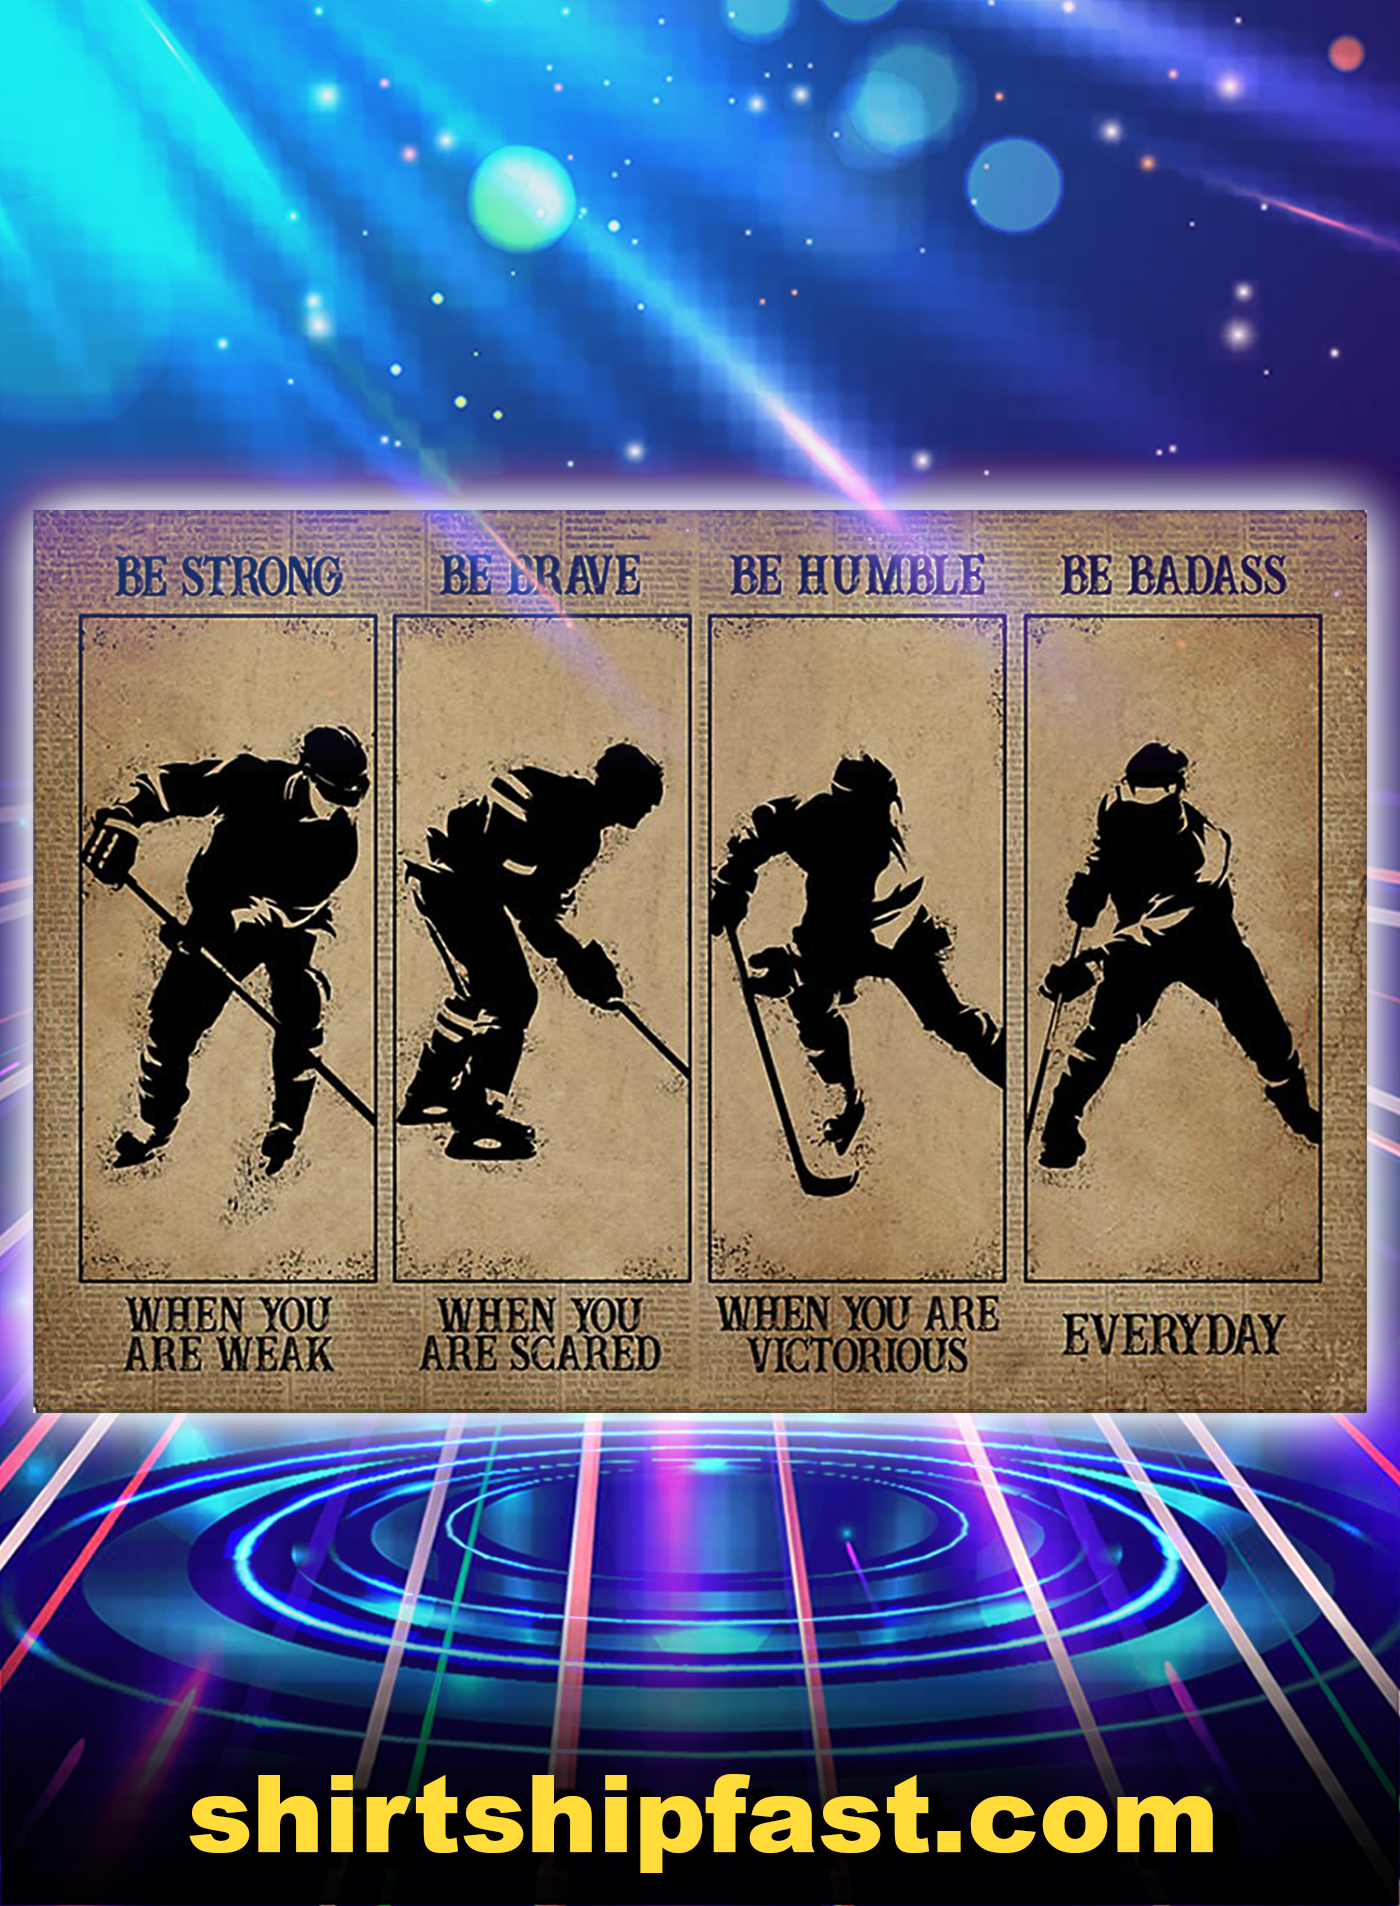 Hockey be strong be brave be humble be badass poster - A1